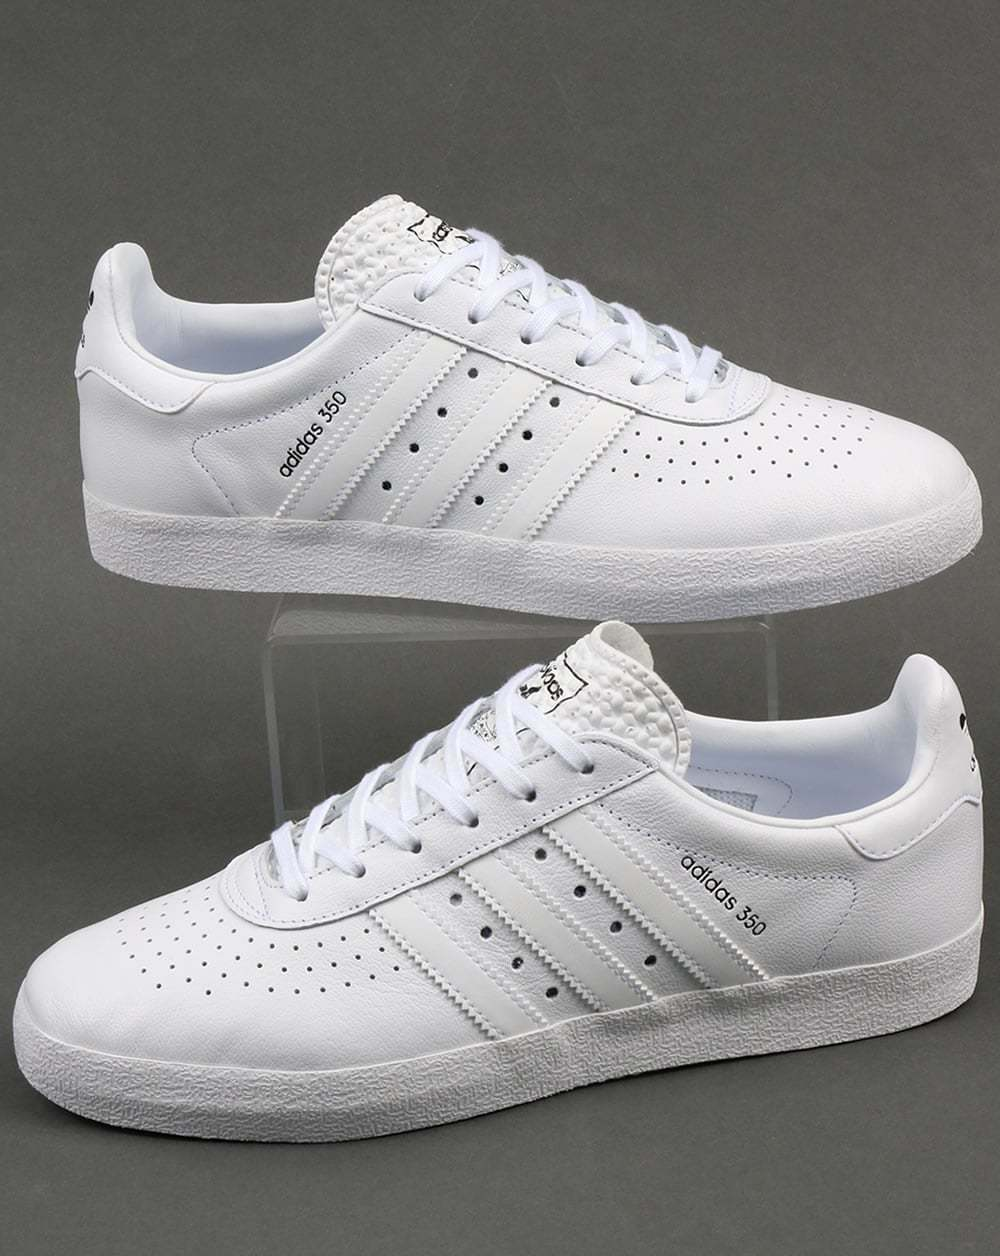 adidas originals adidas 350 trainers in triple white. Black Bedroom Furniture Sets. Home Design Ideas